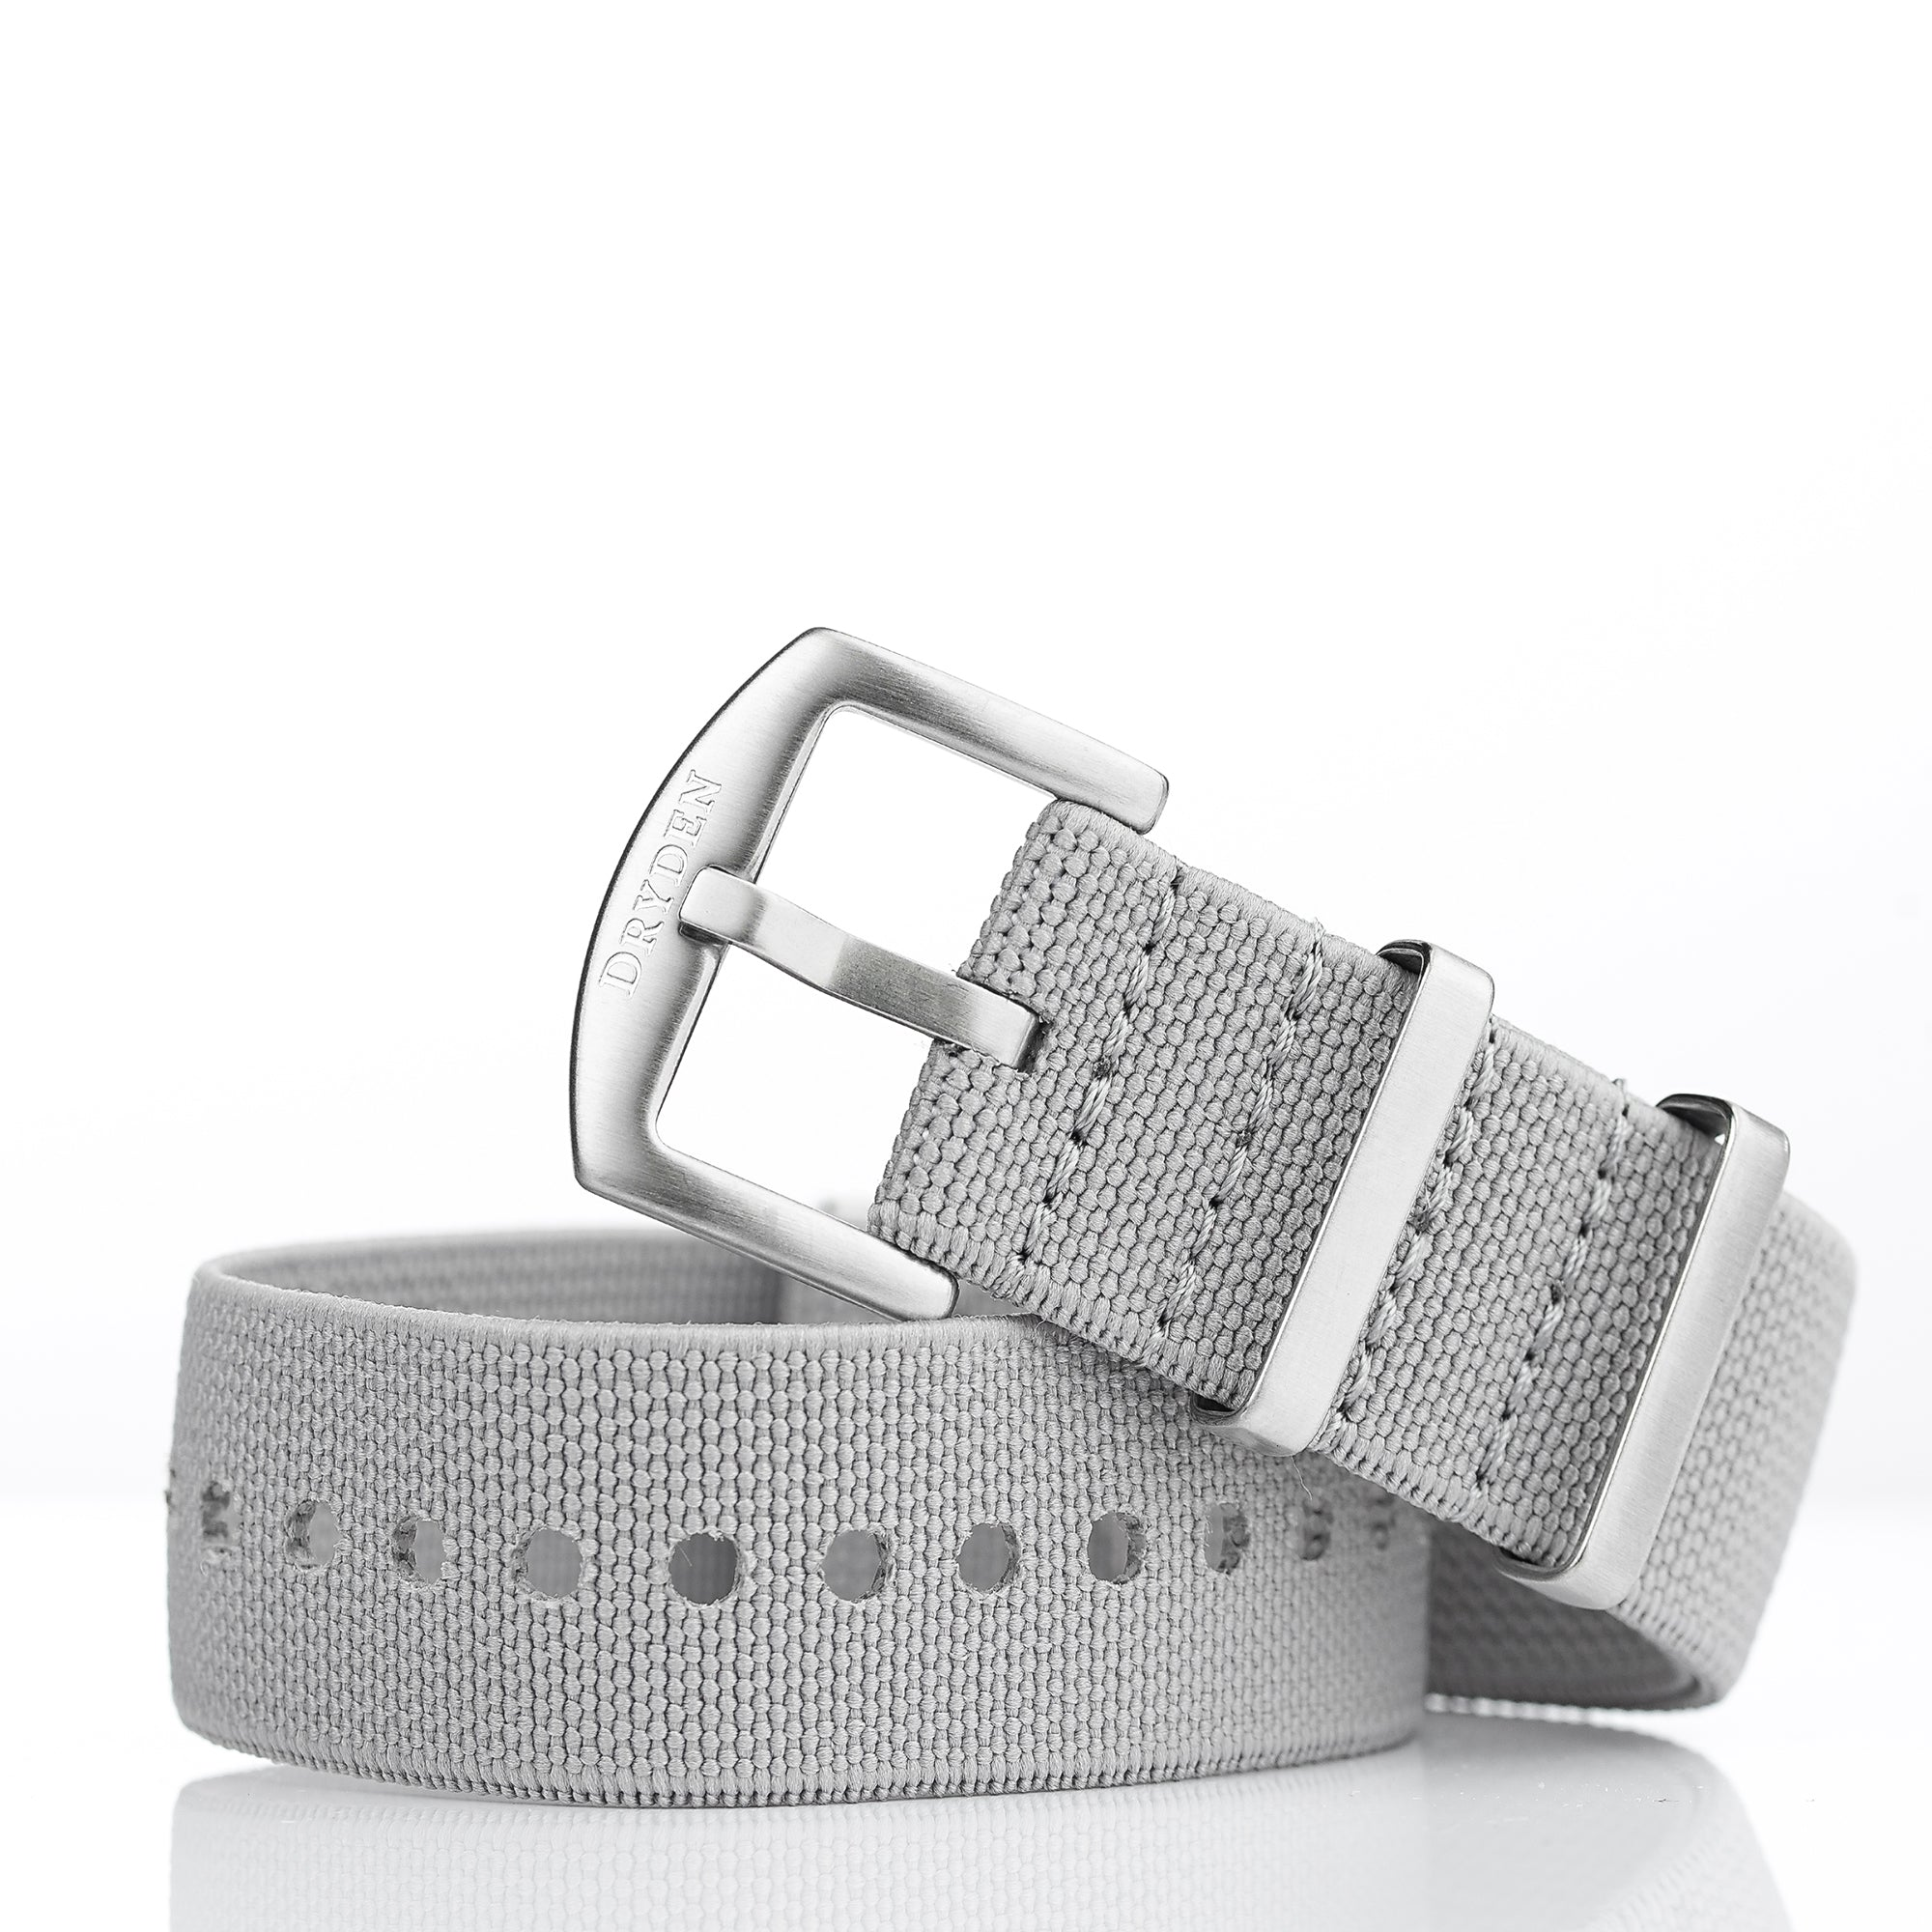 22mm Woven Elastic Nylon Watch Strap - Grey